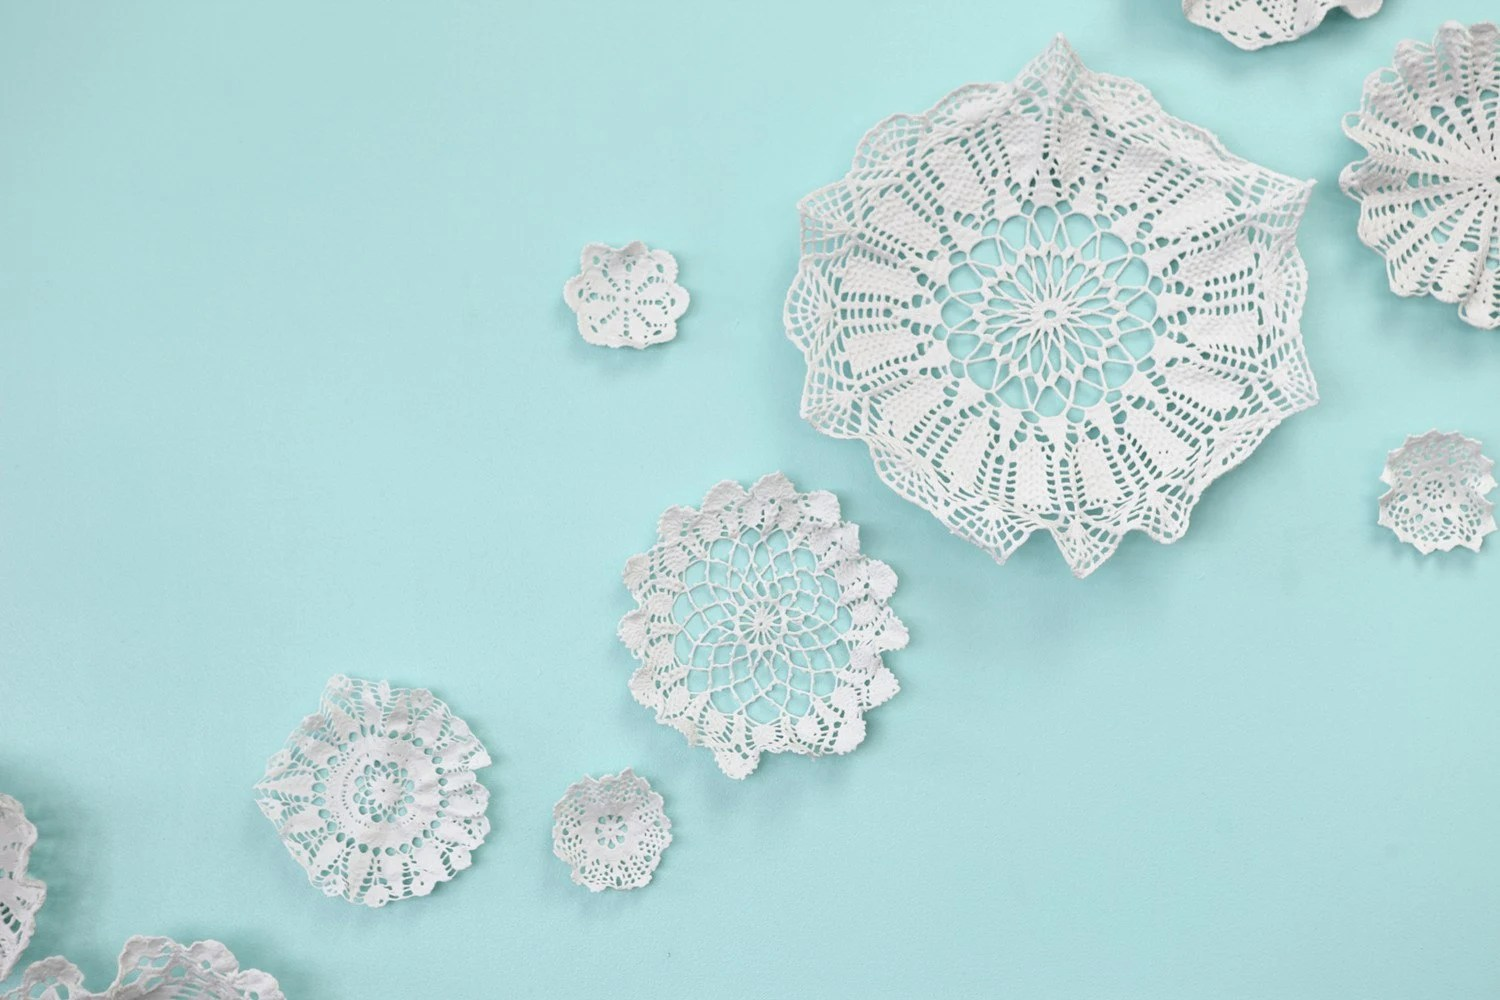 Forest Clearing - Porcelain Lace Decoration